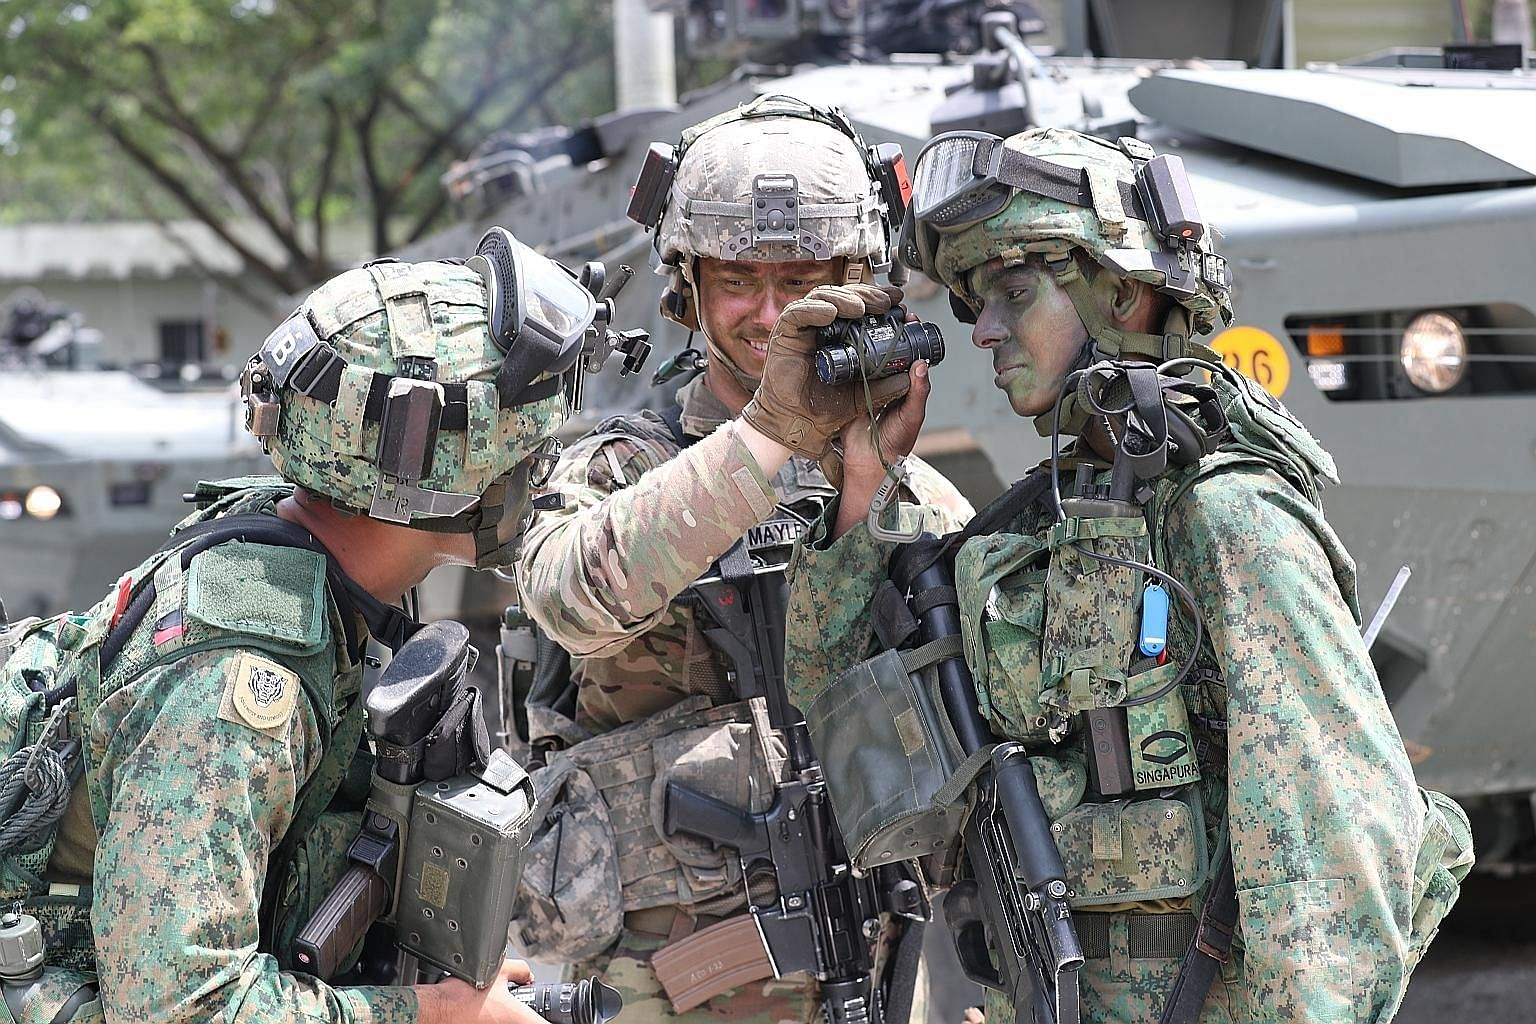 From far left: Singapore Armed Forces (SAF) Third Sergeant Harith Afiq Azman, 23; United States Army Sergeant David T. Mayle, 24; and SAF Lance Corporal Mo Thana Viknesh Waran, 21, at the Murai Urban Training Facility yesterday for Exercise Tiger Bal